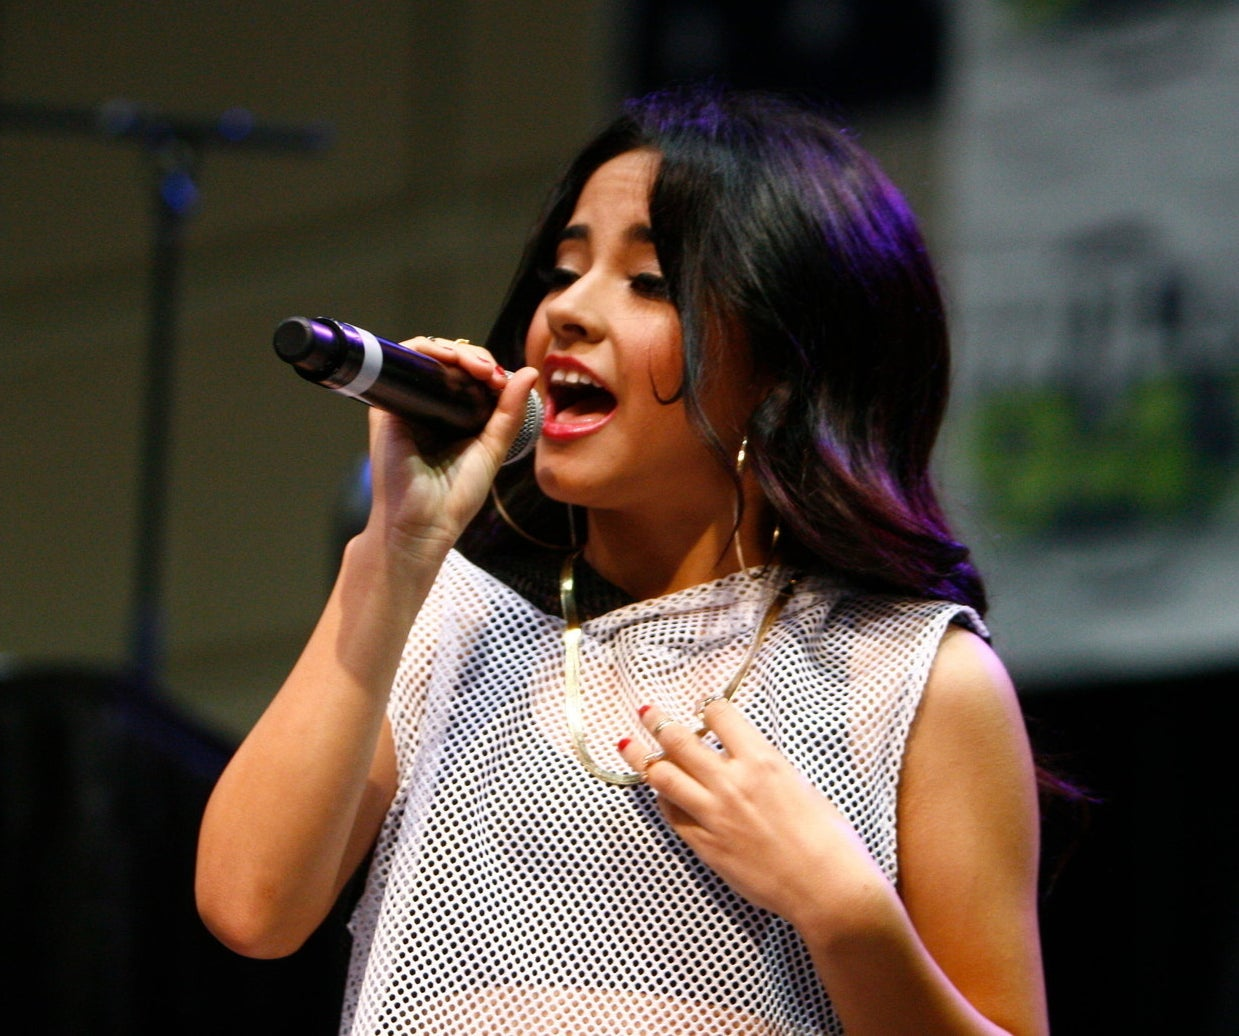 16-year-old Becky G performing in 2013.